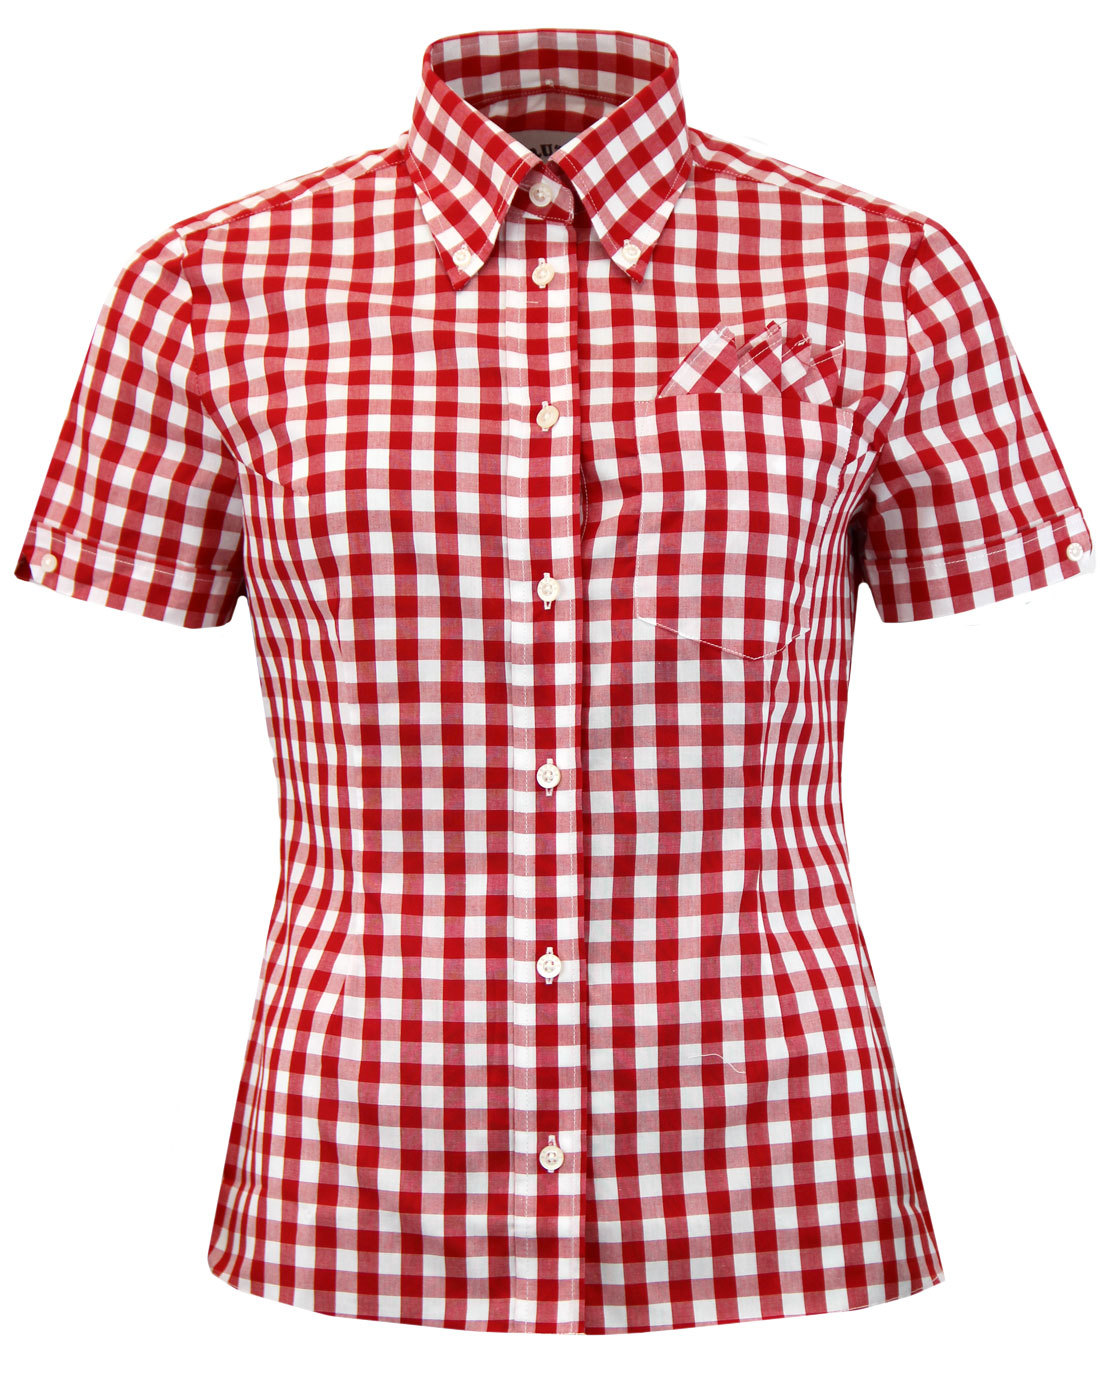 Brutus trimfit women 39 s mod button down gingham check shirt for Red and white gingham shirt women s